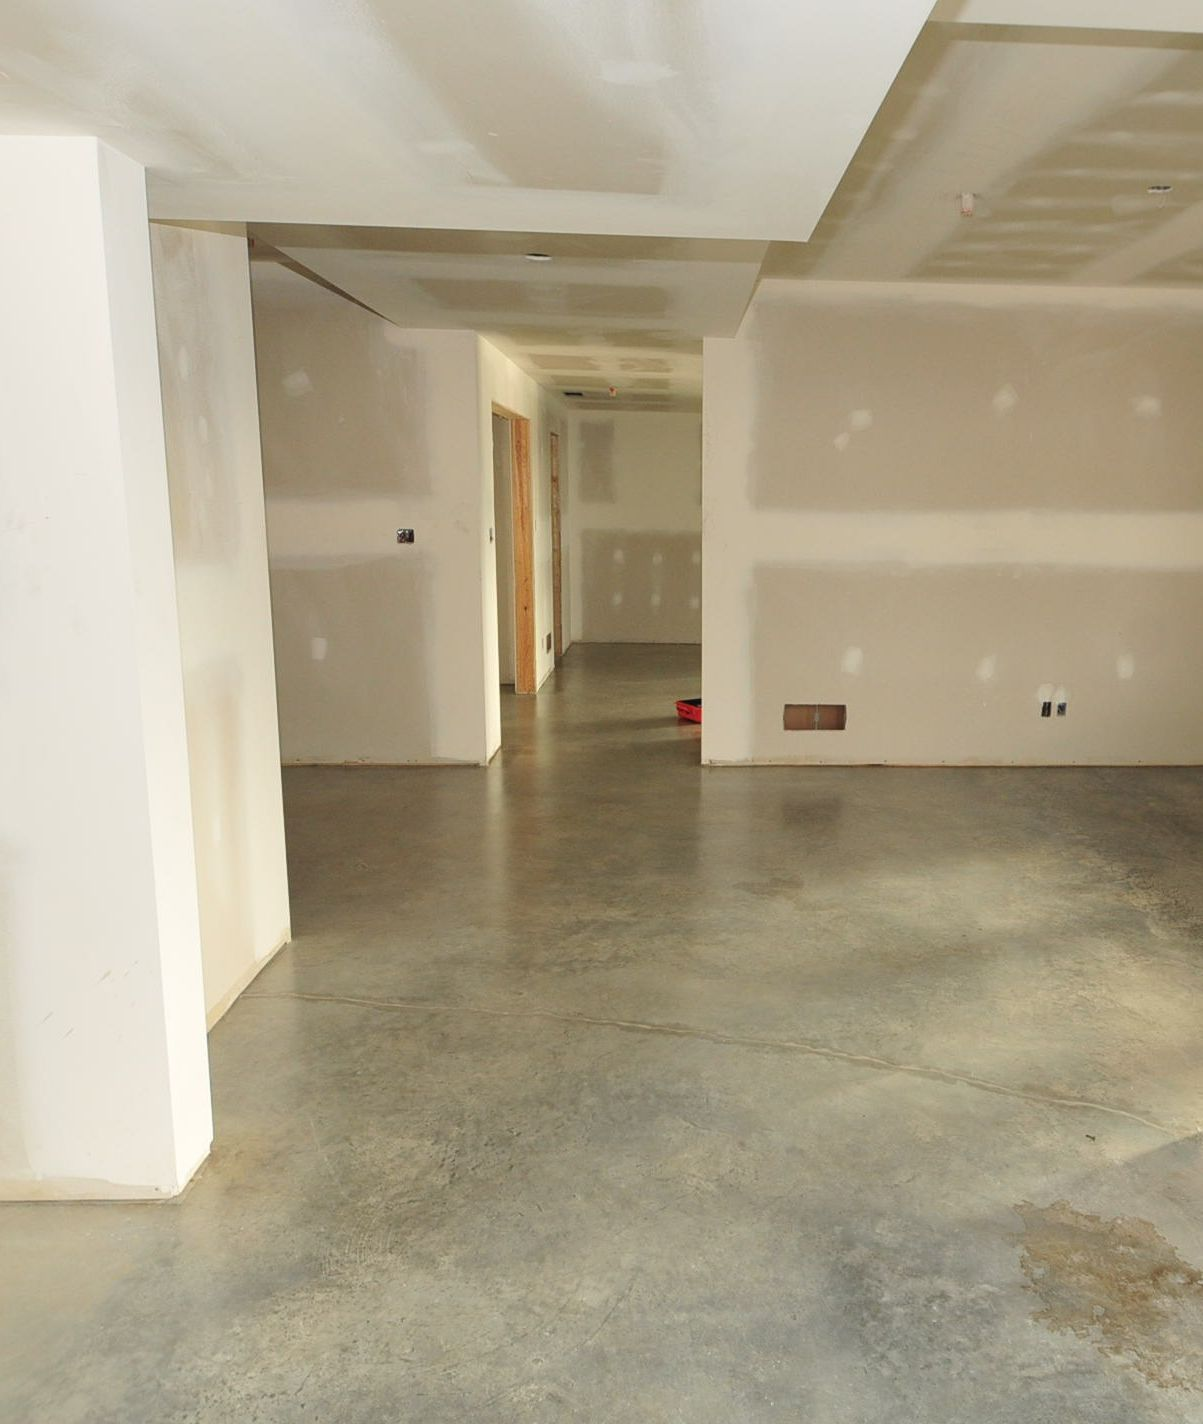 Existing Concrete Basement Floors Look Amazing Naturally A Quick Cost Effective Stunning Concrete Basement Floors Concrete Floors Basement Flooring Options